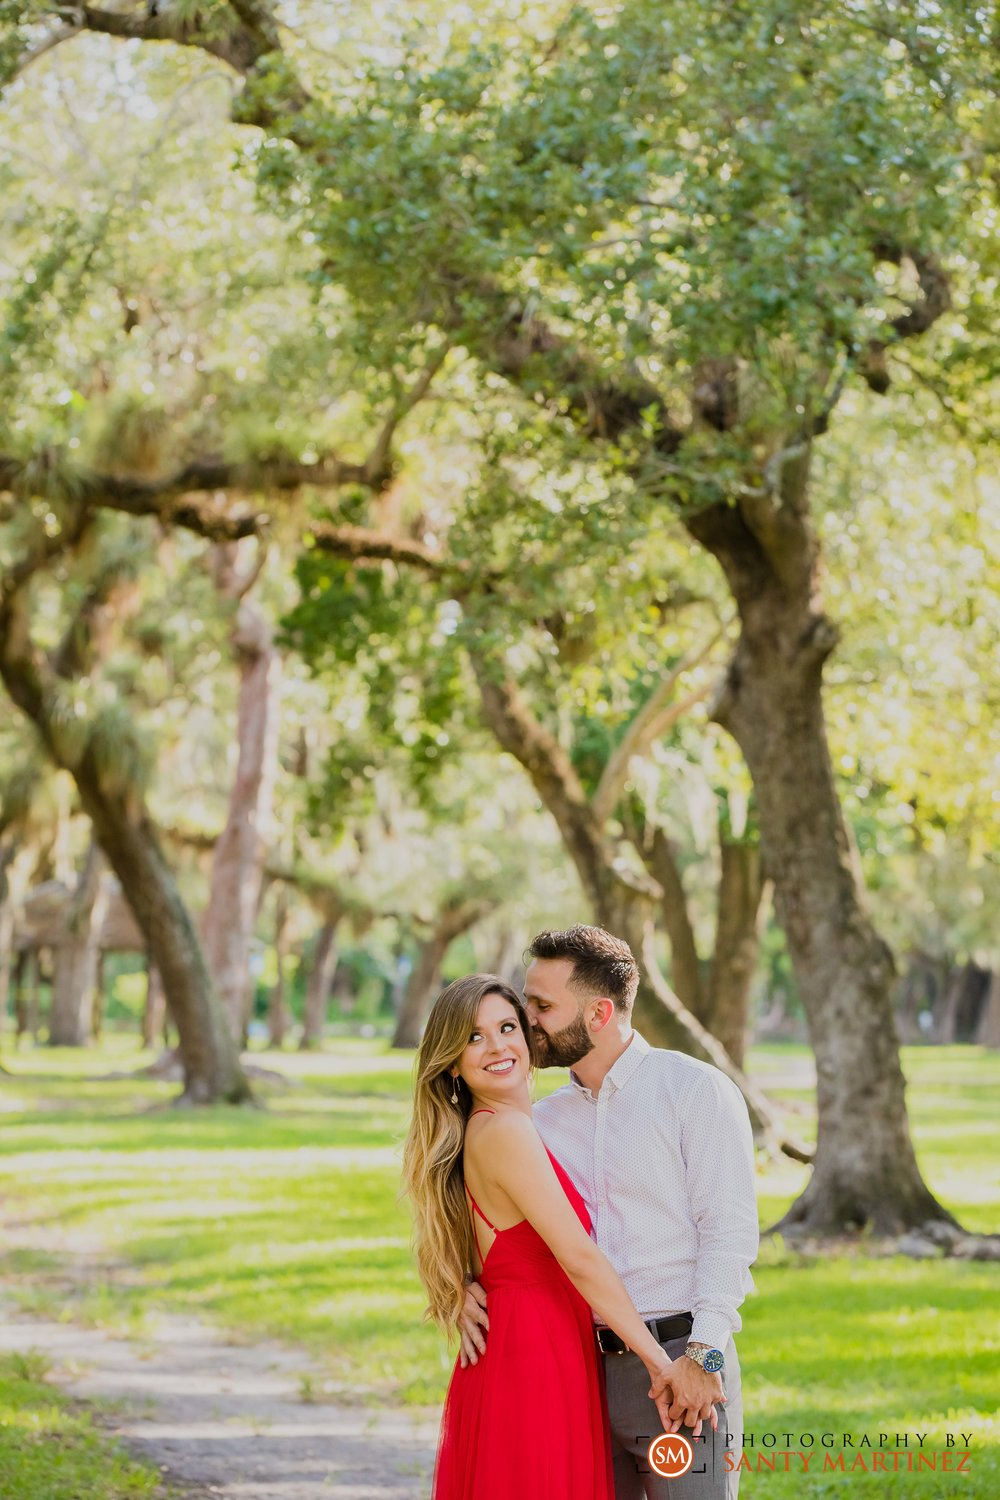 Engagement Session - Matheson Hammock Park - Santy Martinez Wedding Photographer-3.jpg